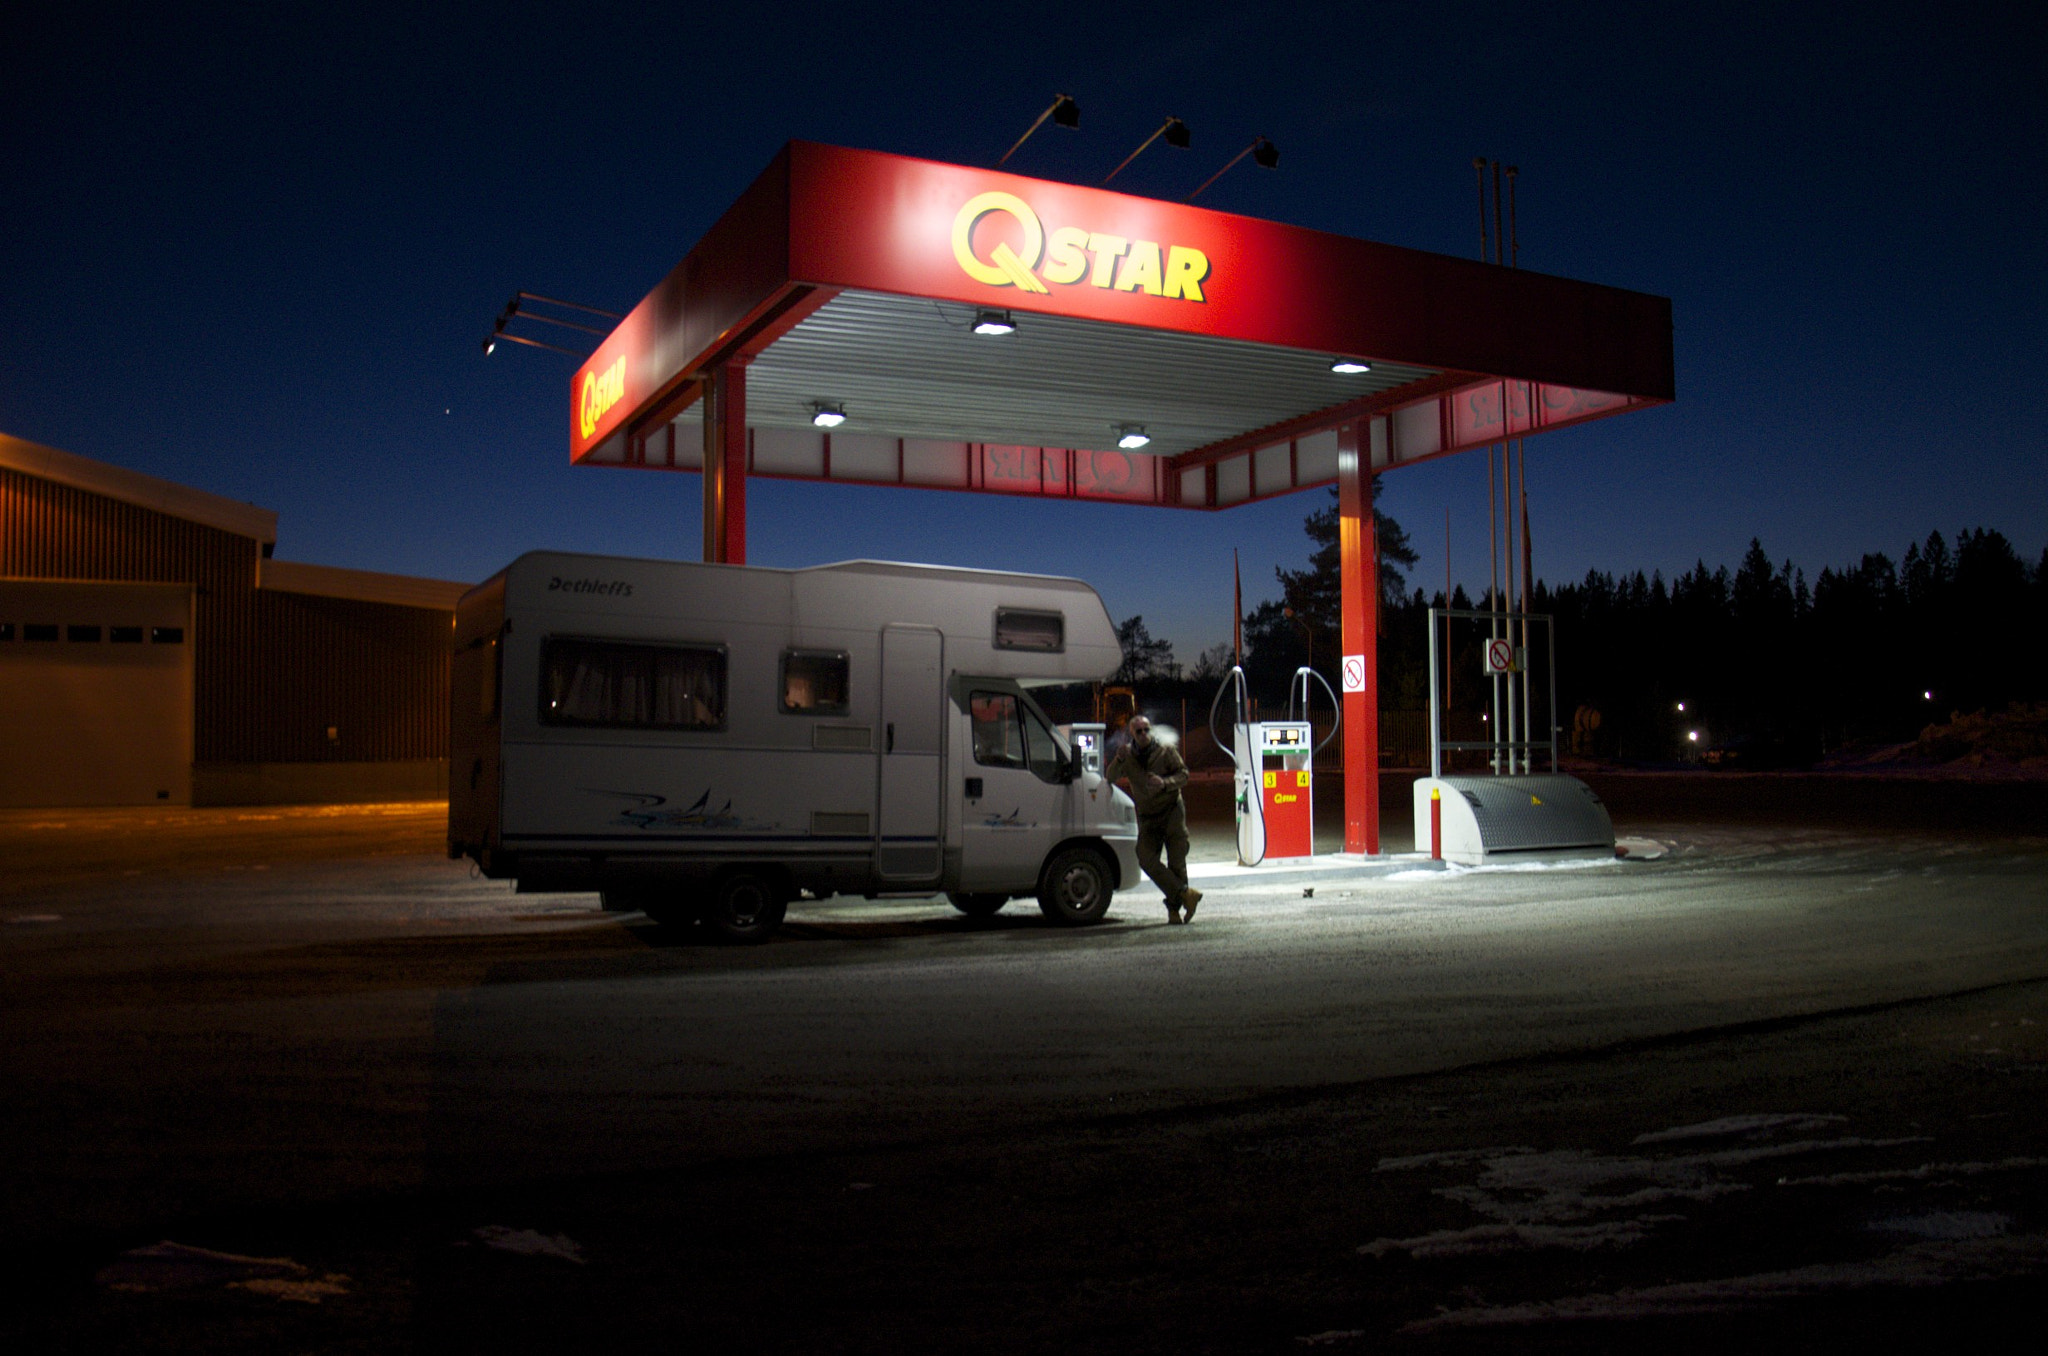 Photograph Recreational Vehicle at Gas Station by Jarkko Tervonen on 500px